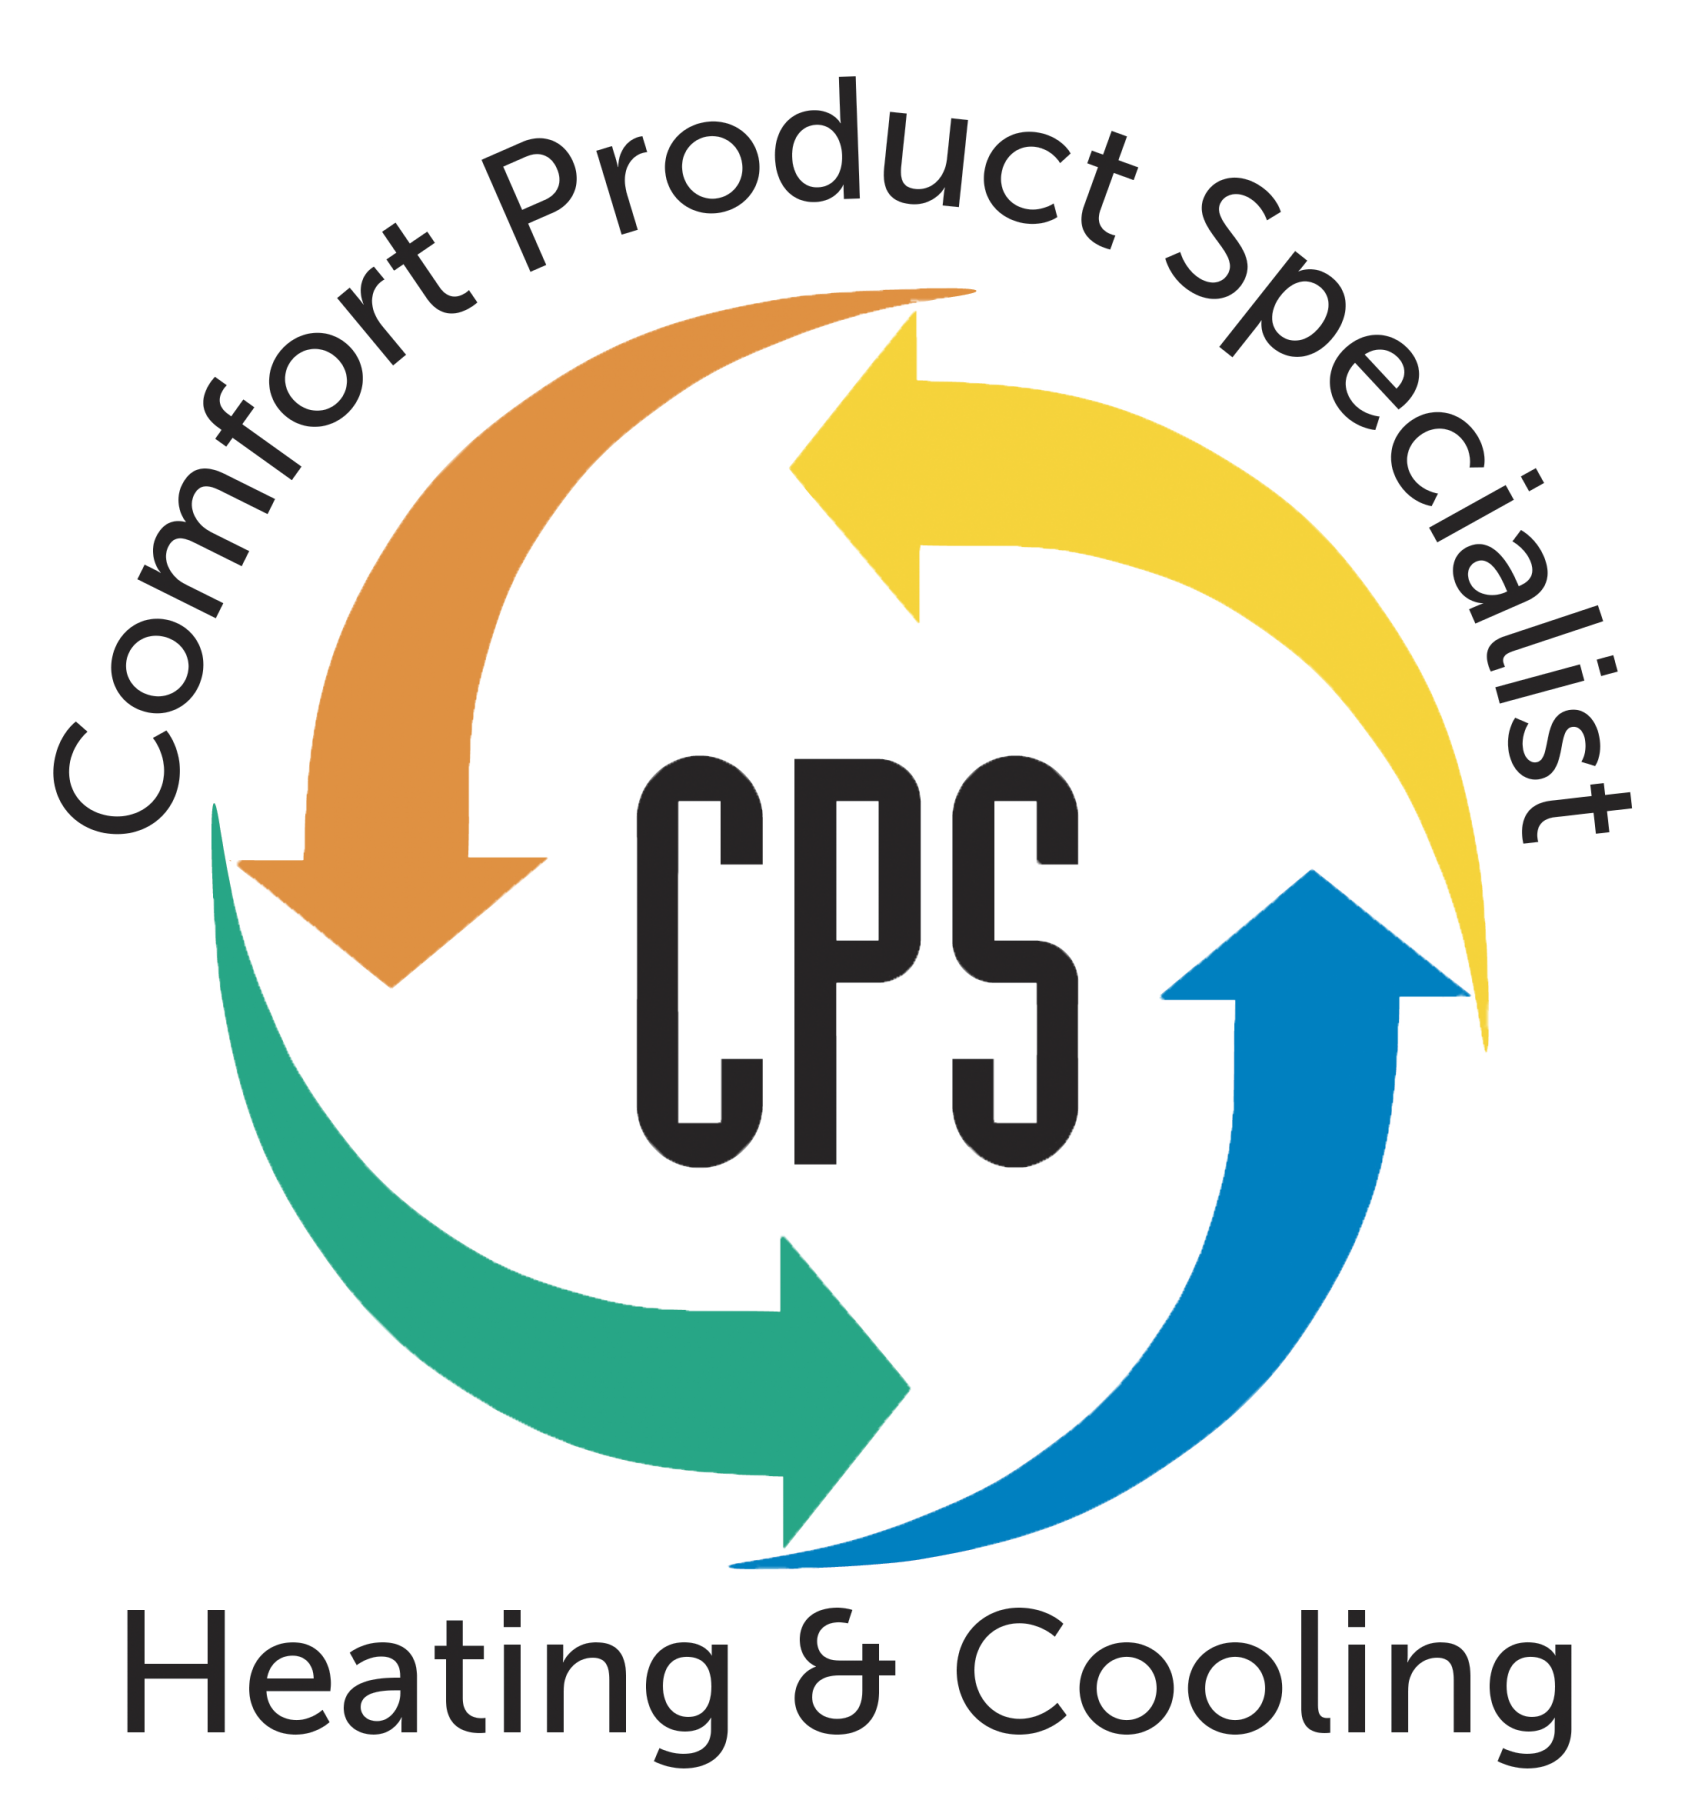 CPS Heating and Cooling, the best HVAC company in Westborough, MA.